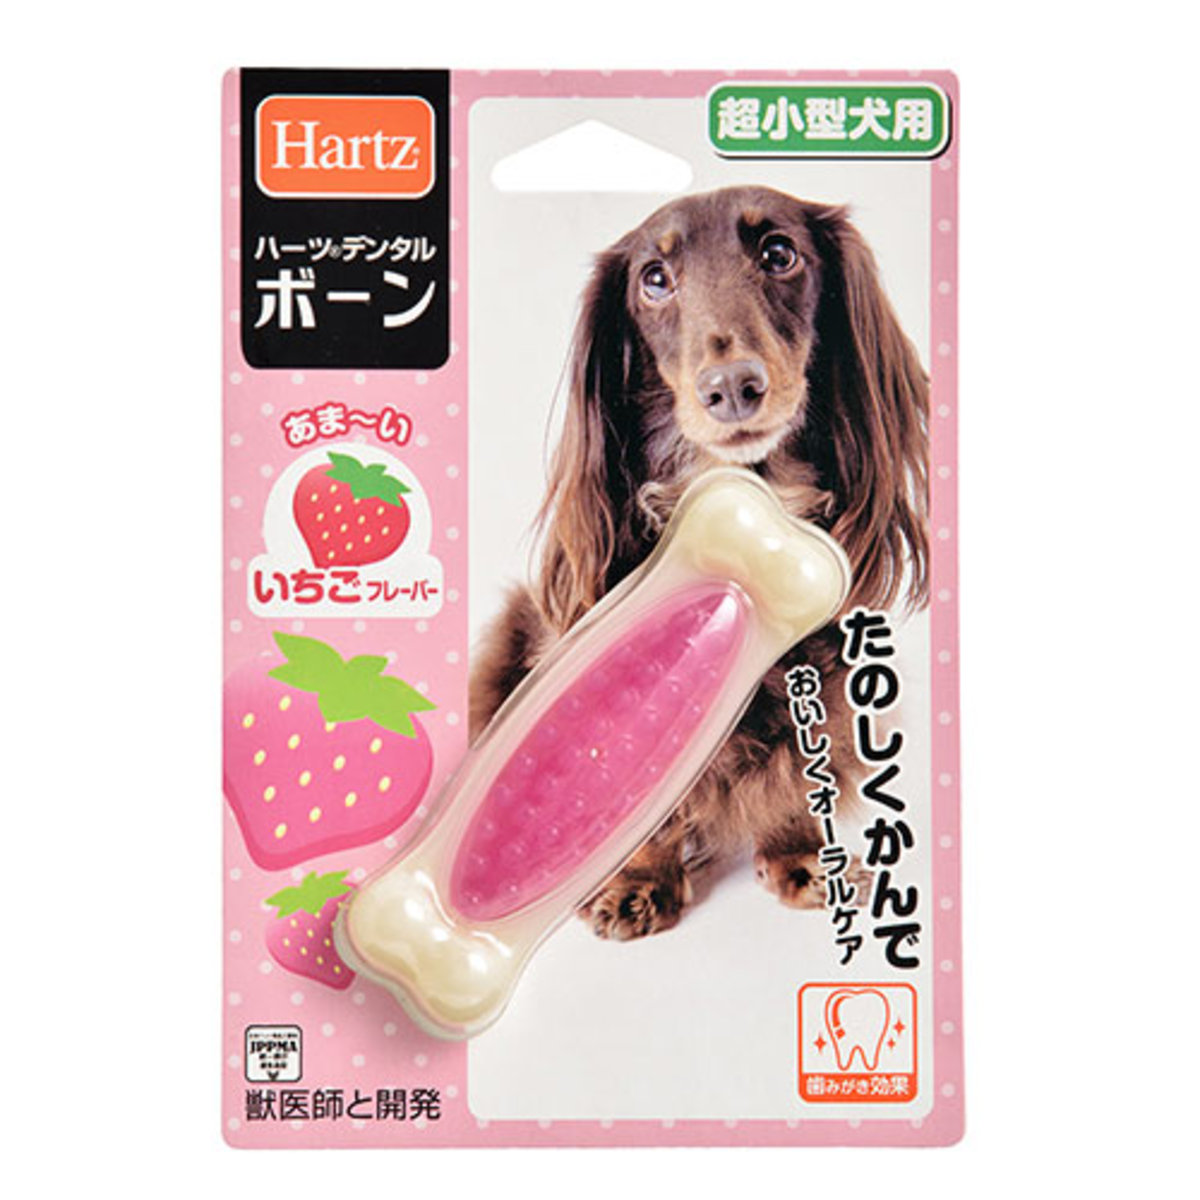 Hartz Dental Bone Strawberry flavor - SS (05102)